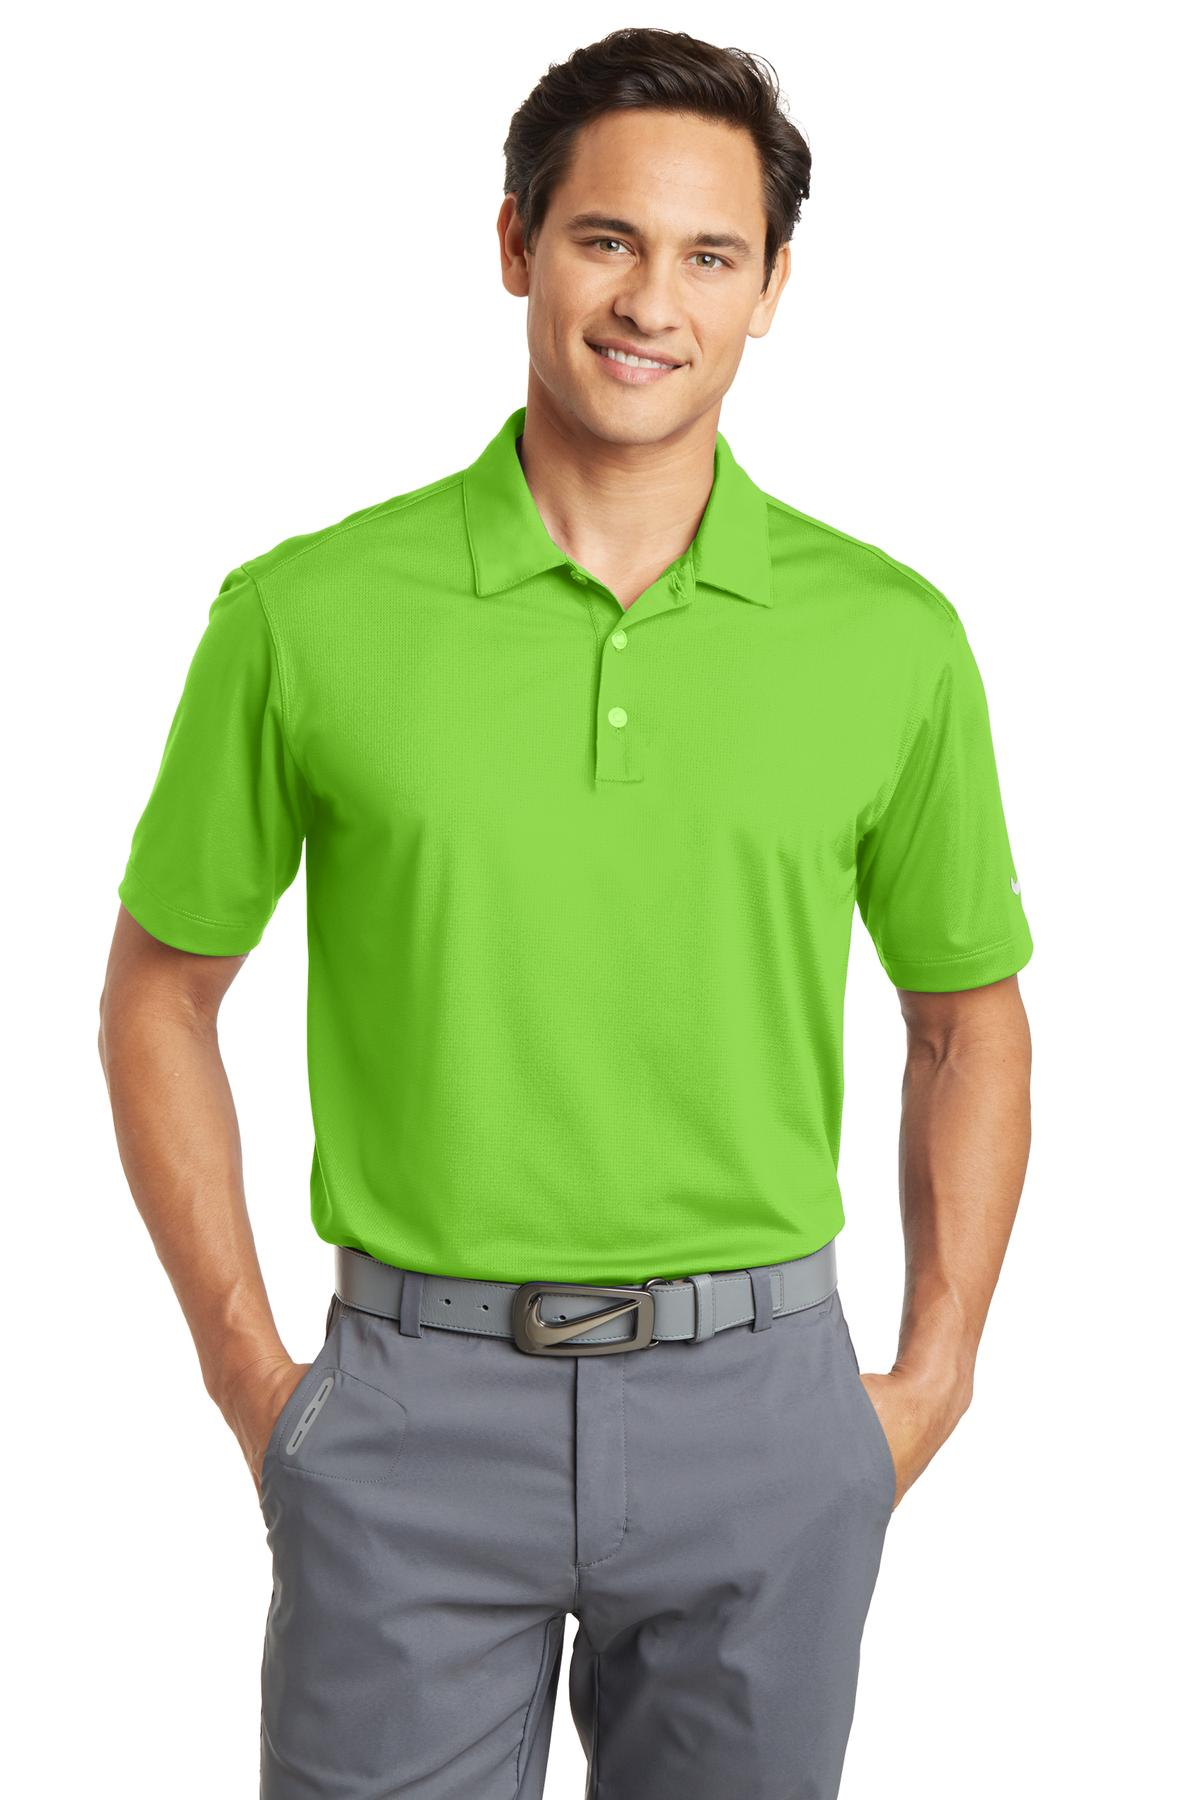 Nike Dri-FIT Vertical Mesh Polo. 637167 - Action Green